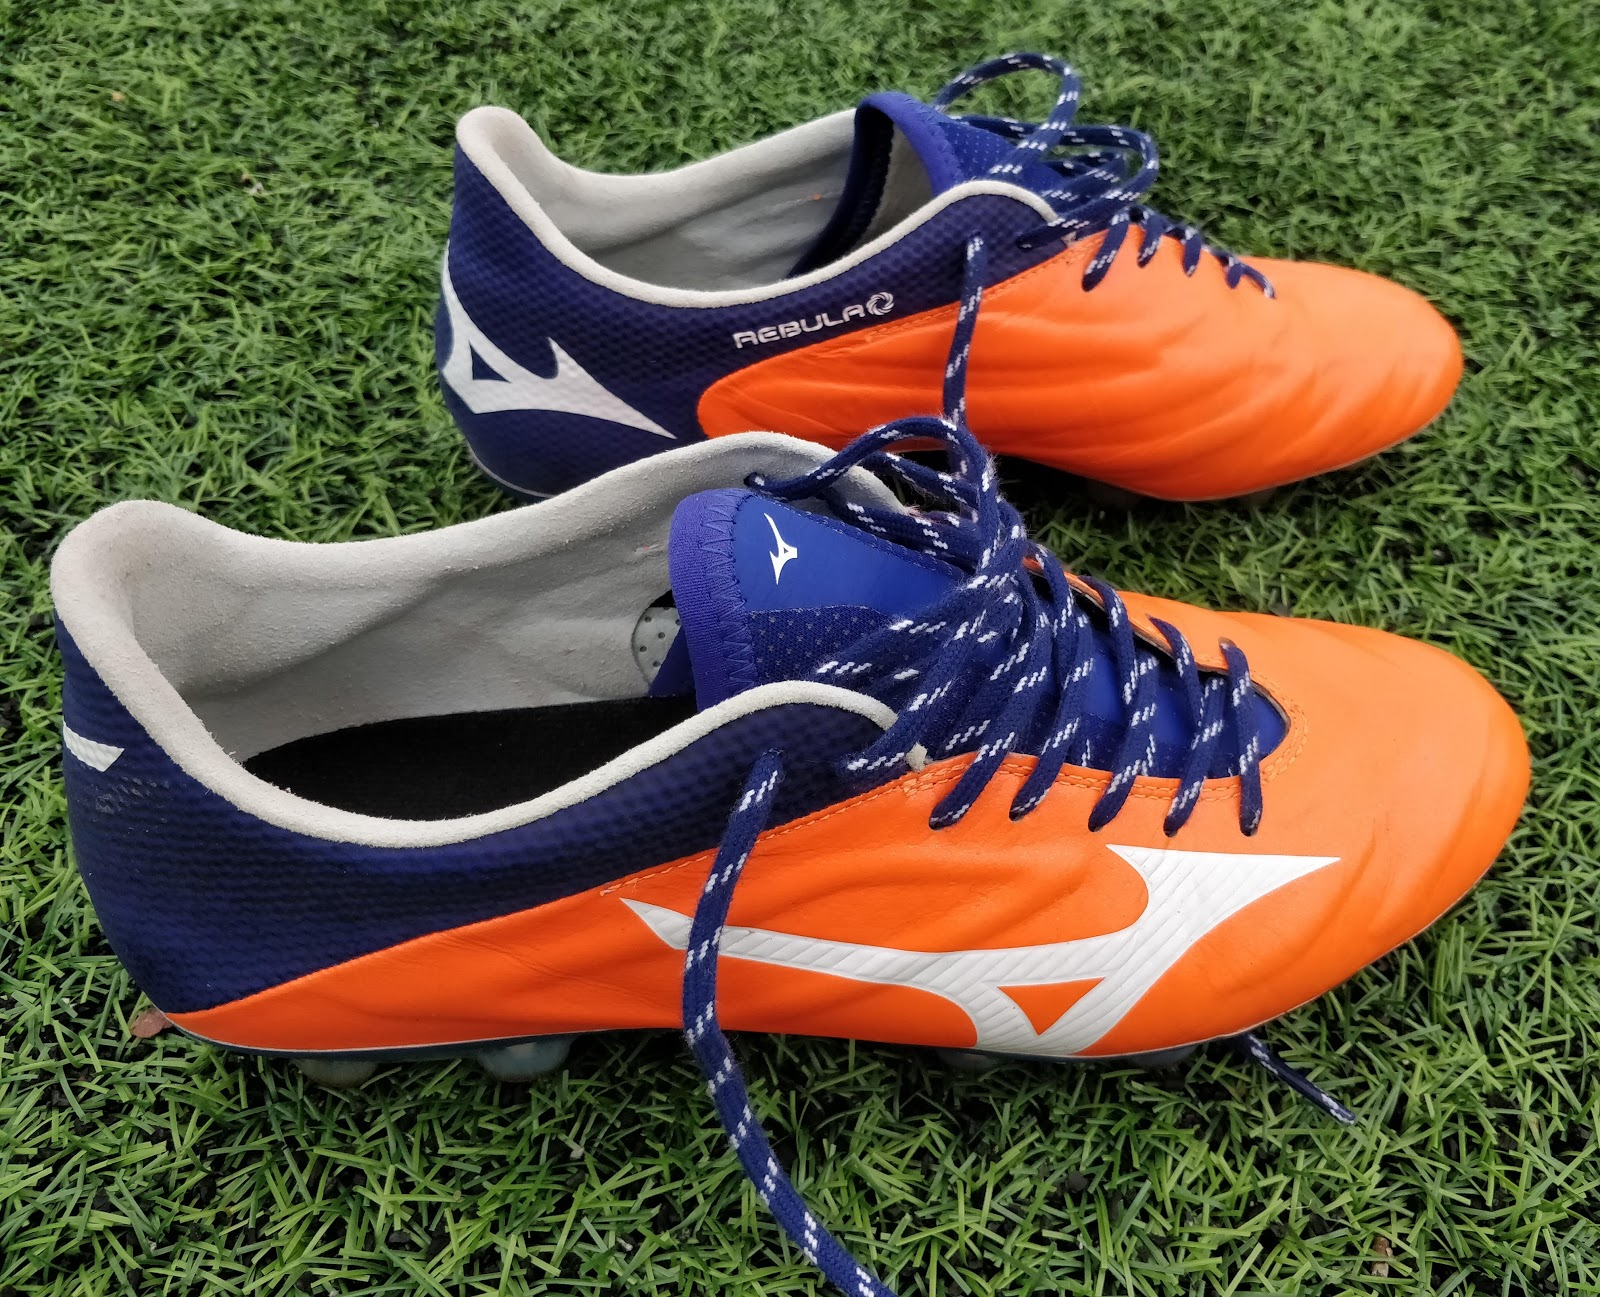 c645847a0 Finnball Wizard  Mizuno Rebula 2 V1 Made in Japan Review - Class and ...